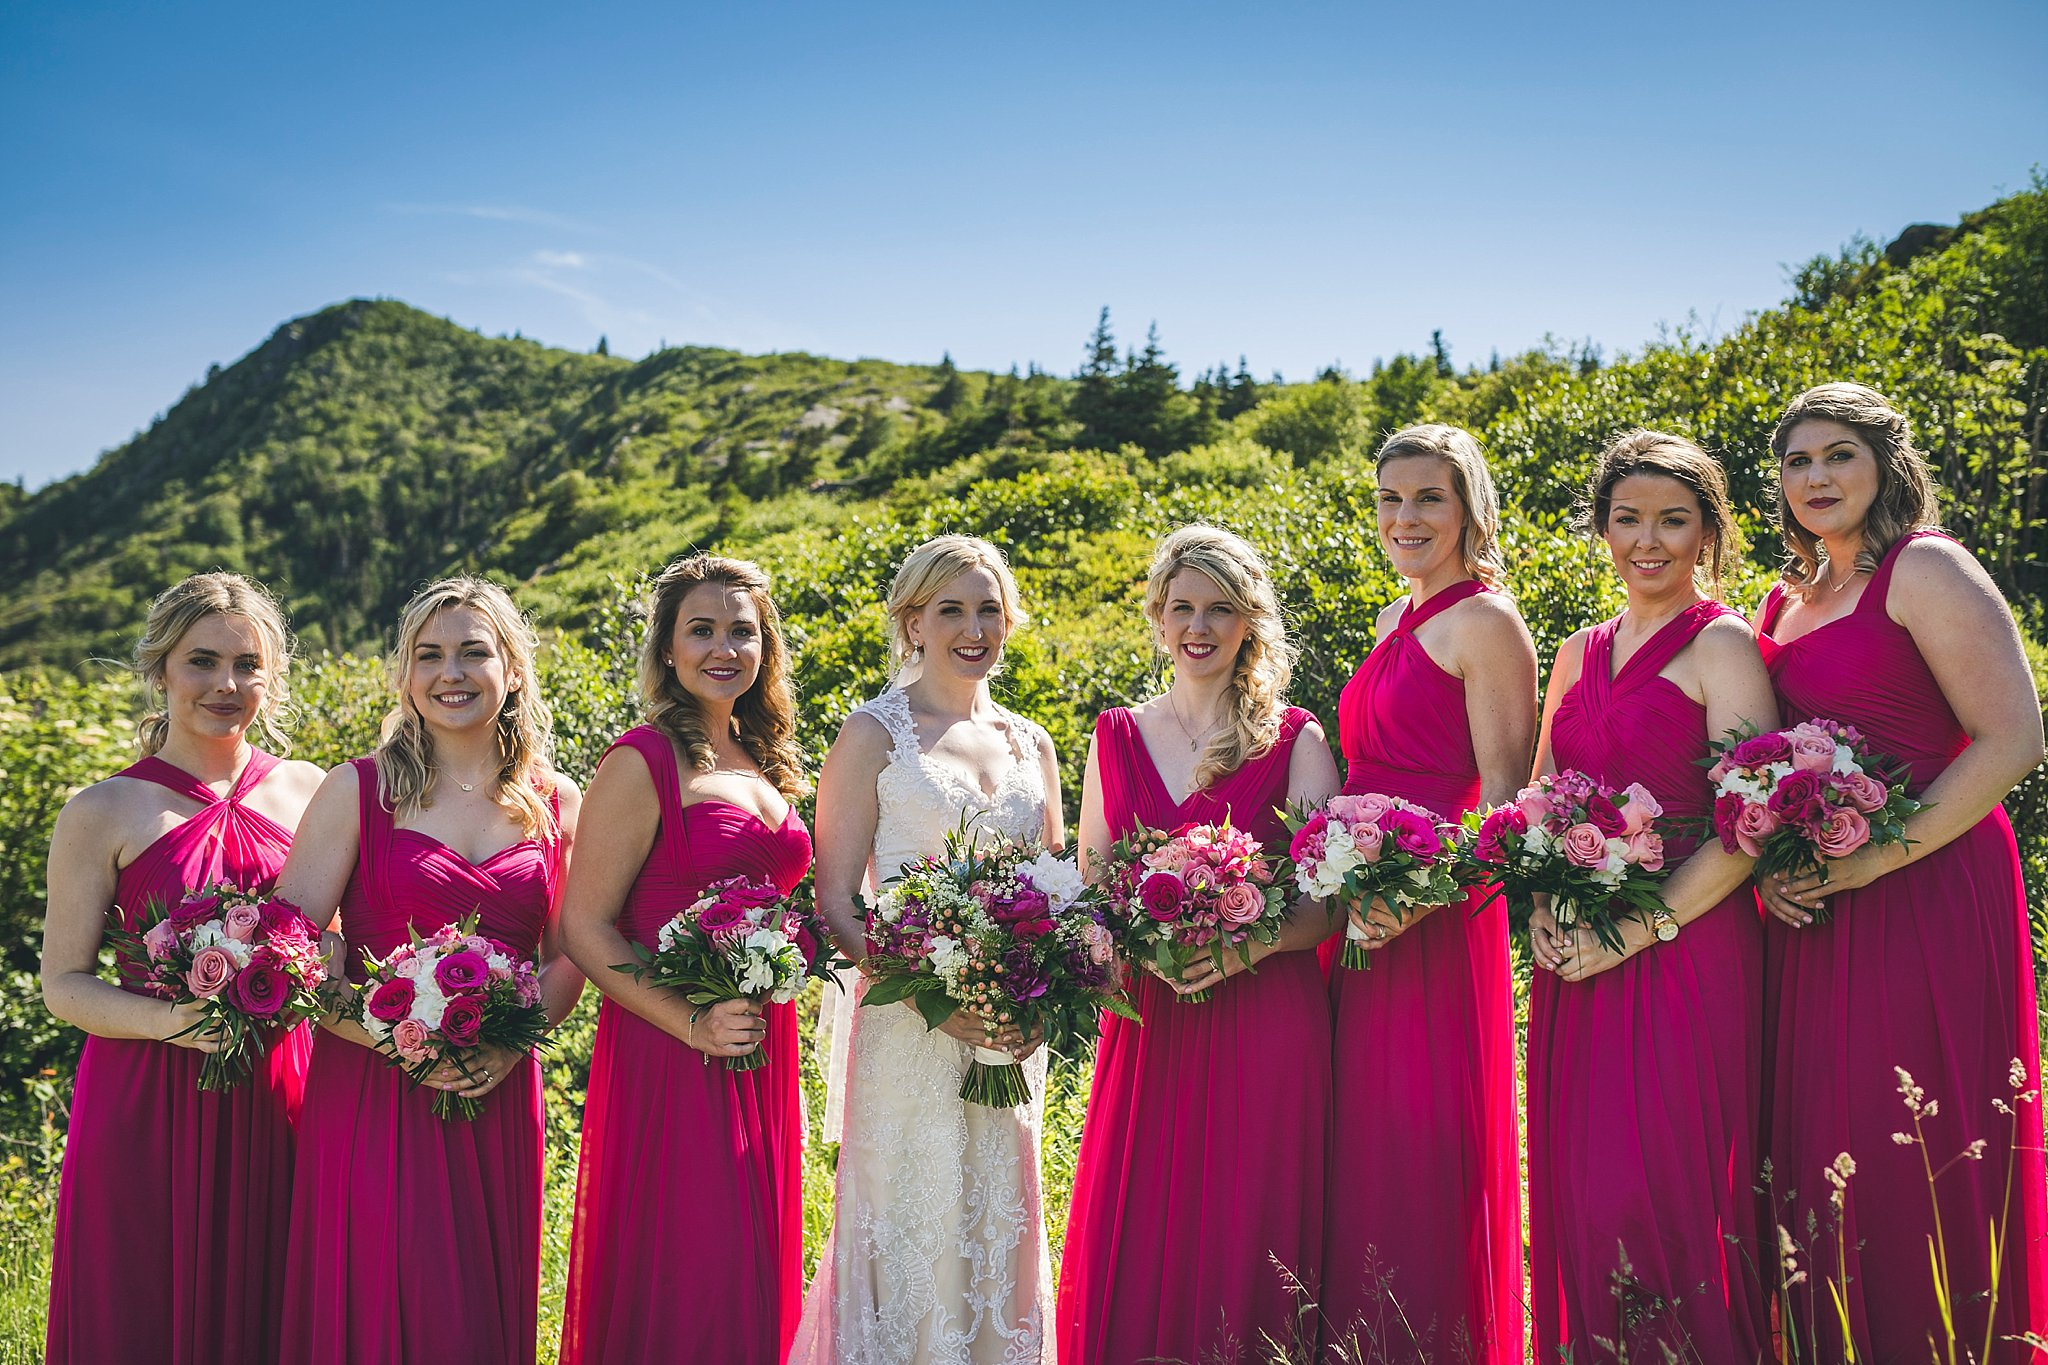 Bride in her Casablanca wedding dress and her Bridesmaids celebrate during a St. John's, Newfoundland wedding.